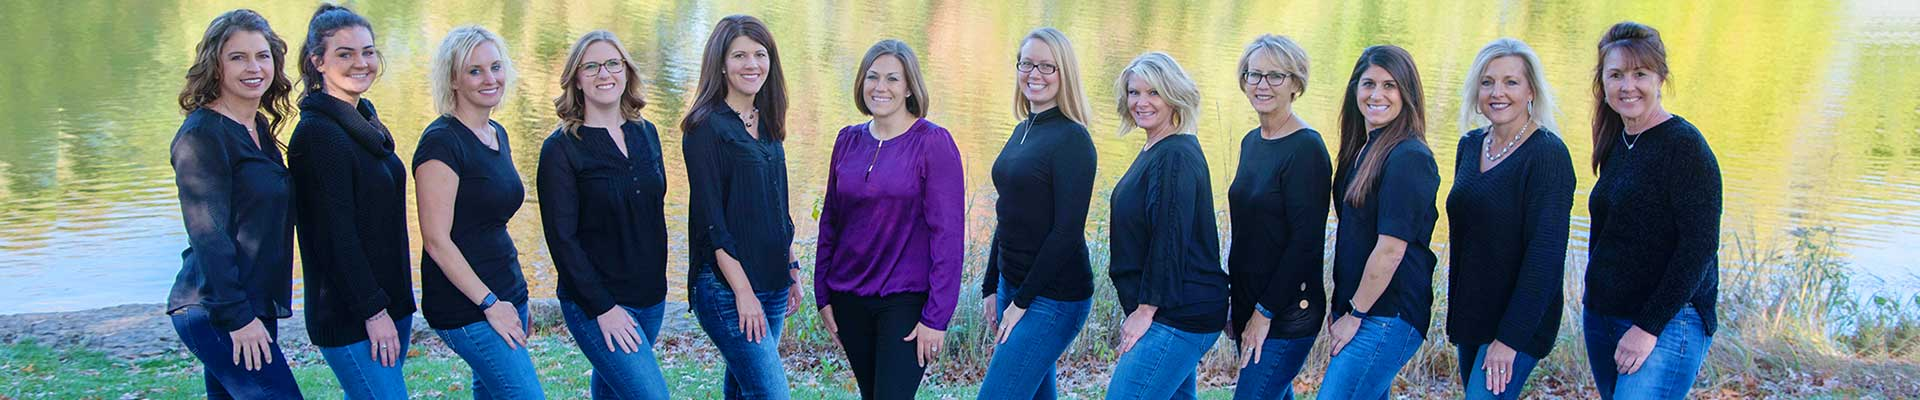 Our Office Staff Slider Junction Orthodontics in Kirkwood, MO